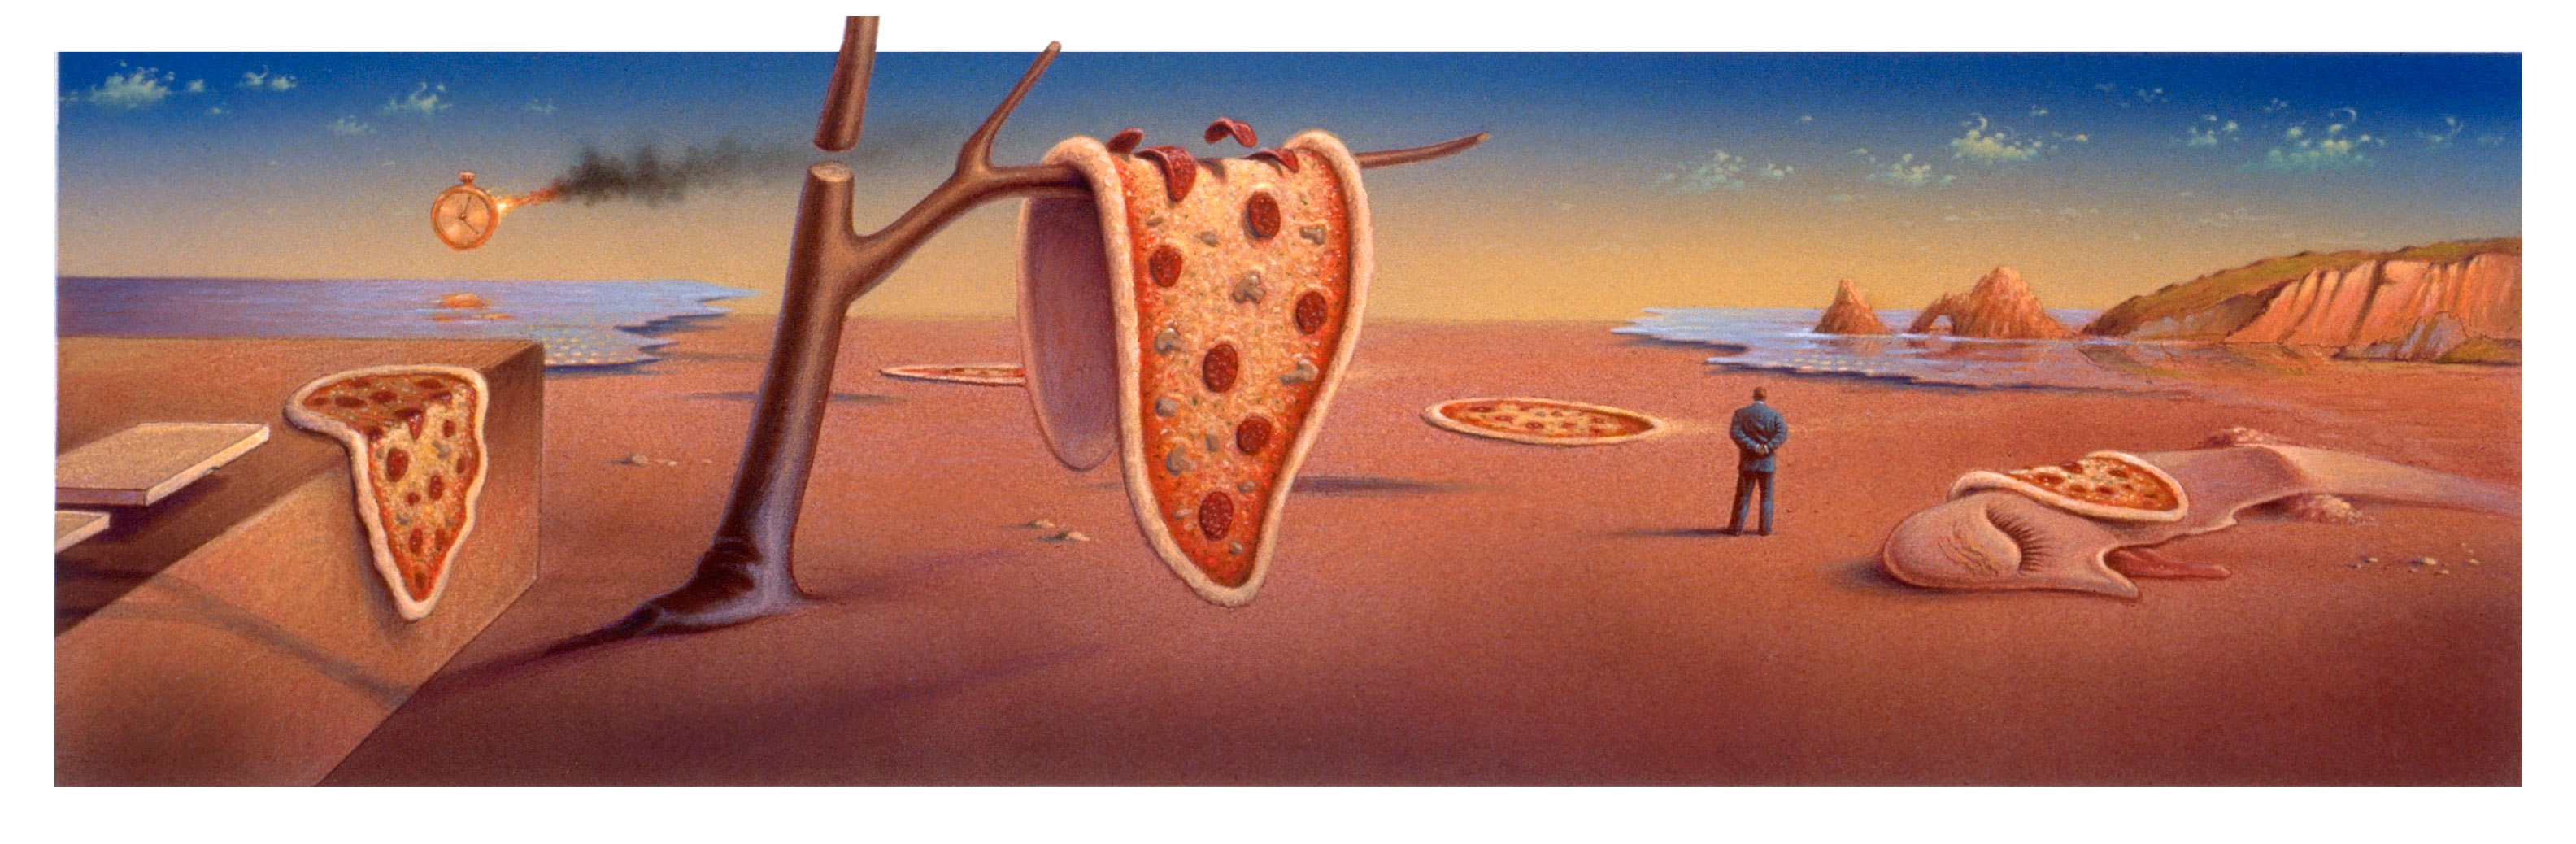 Matt_Zumbo_parody_surreal_food_pizza.jpg